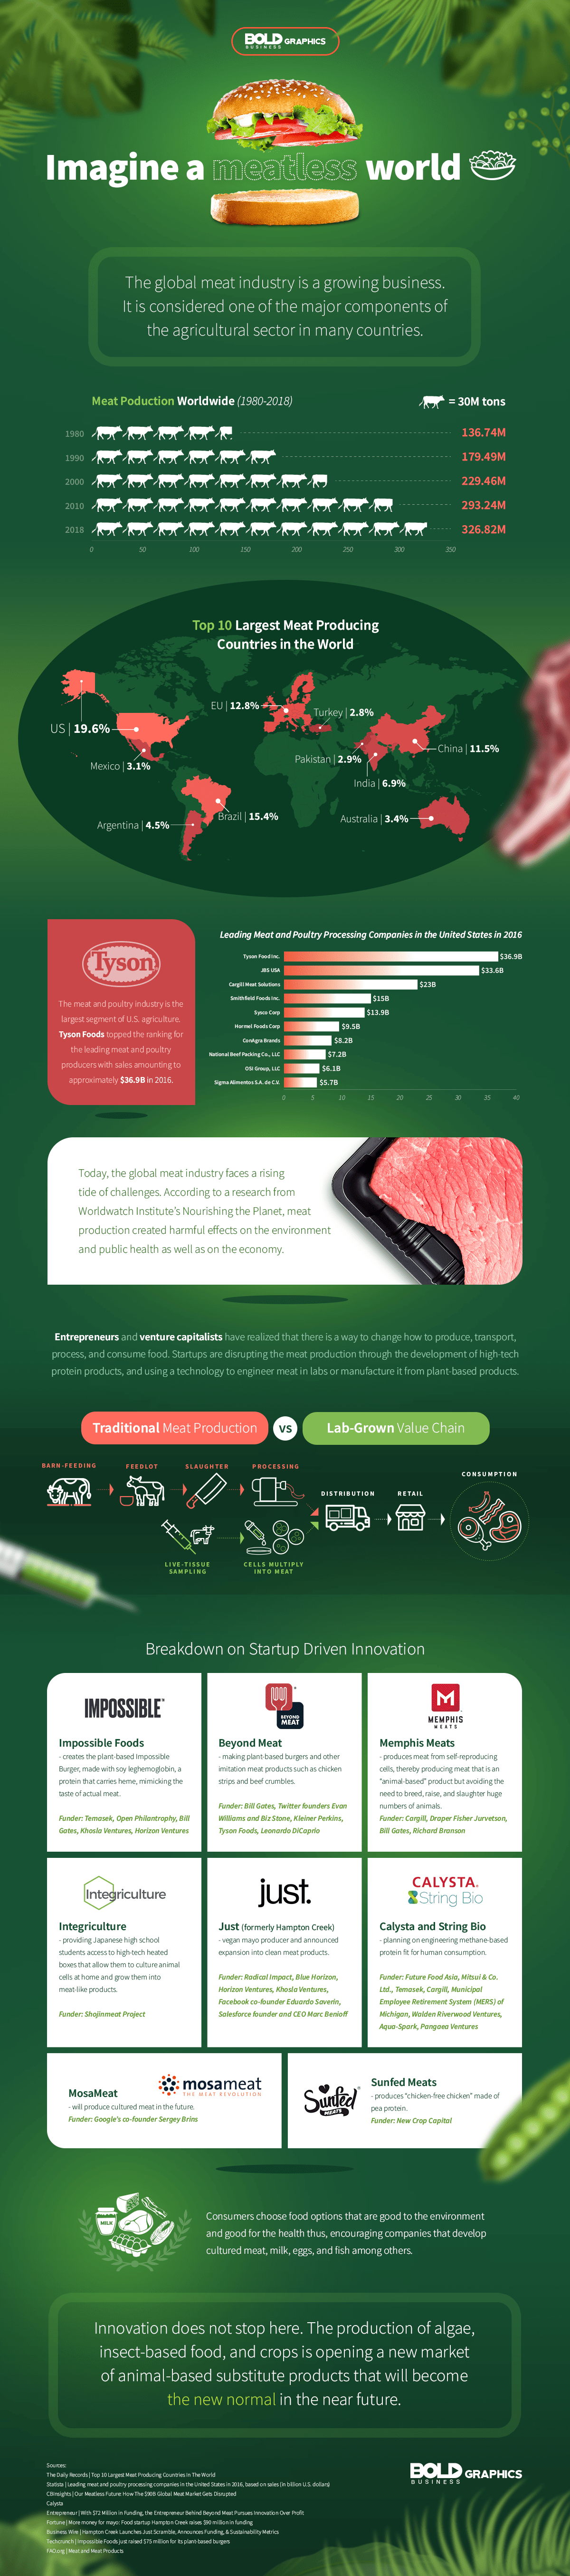 meat industry statistics,meat industry facts,meat industry data,meat industry problems,meat industry news,meat production in the us,meat production and the environment,meat production statistics,meat production and the environment,meat production by country,meat producing countries,plant based meat burger,plant based meat substitute,plant based meat companies,plant based meat infographic